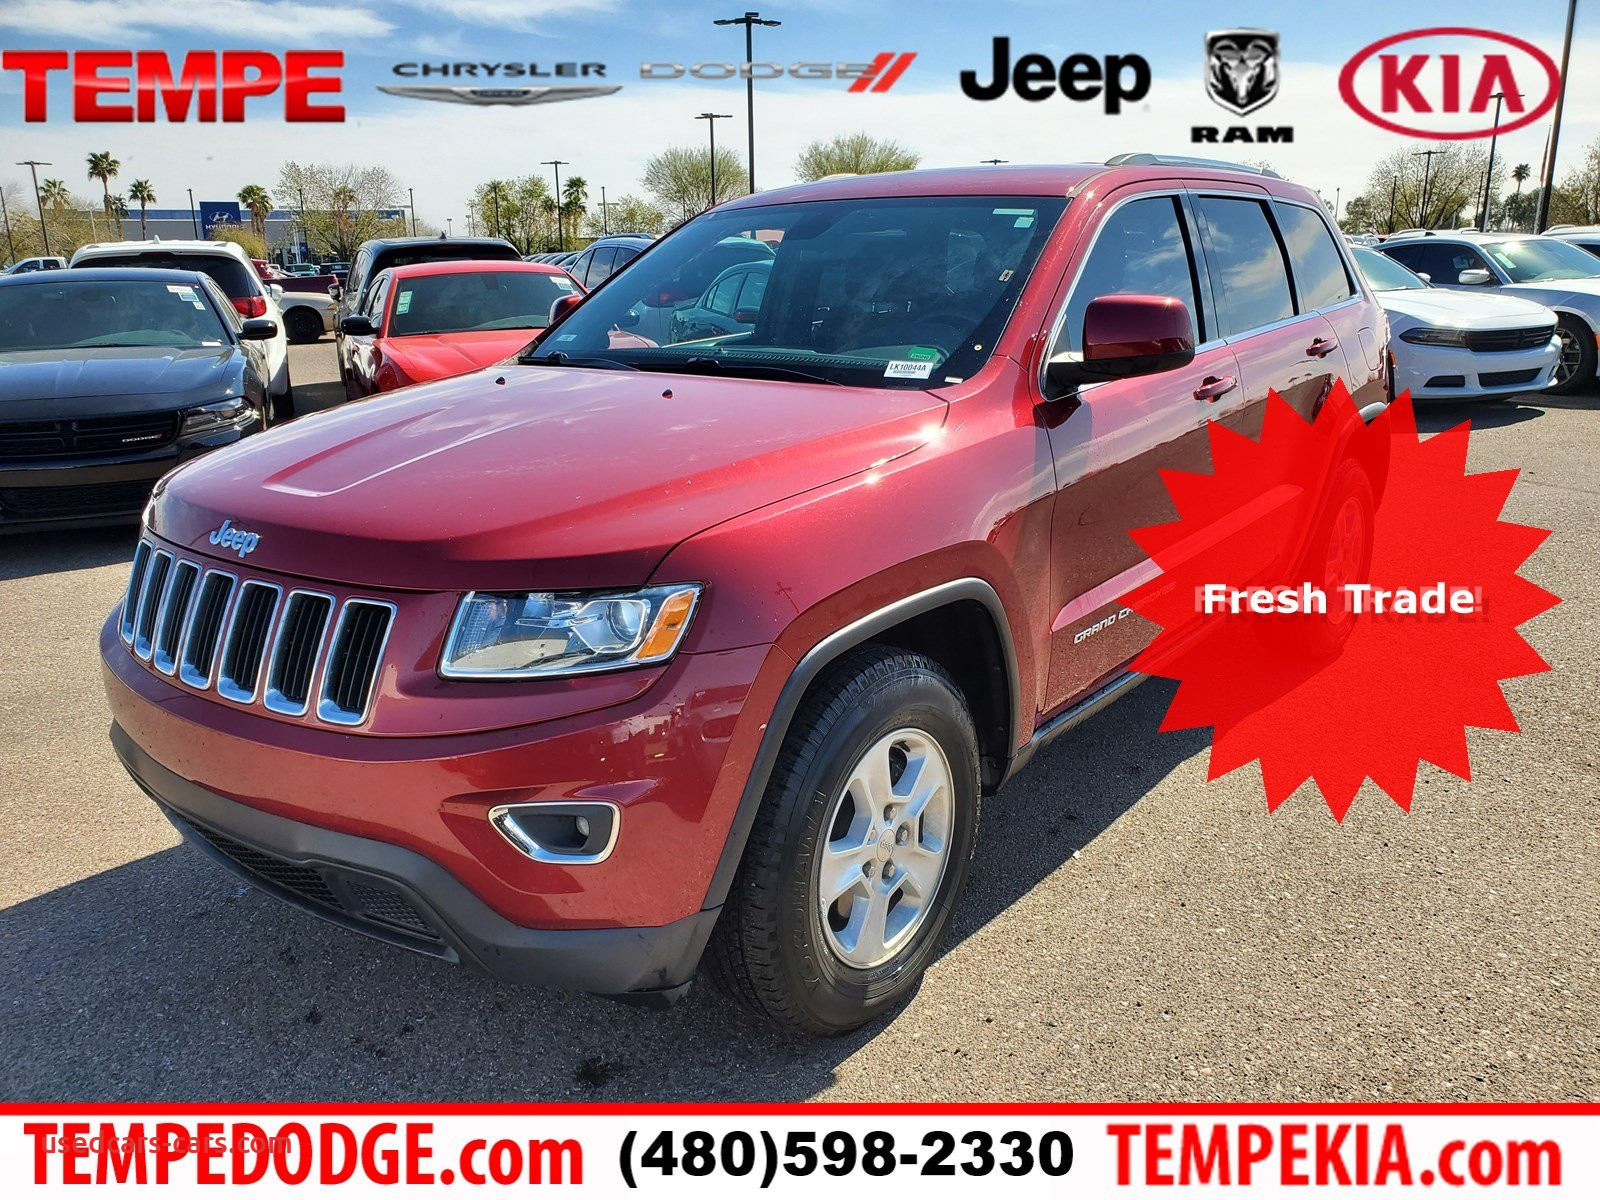 2015 Grand Cherokee Review Lovely Pre Owned 2015 Jeep Grand Cherokee Laredo Rwd Sport Utility